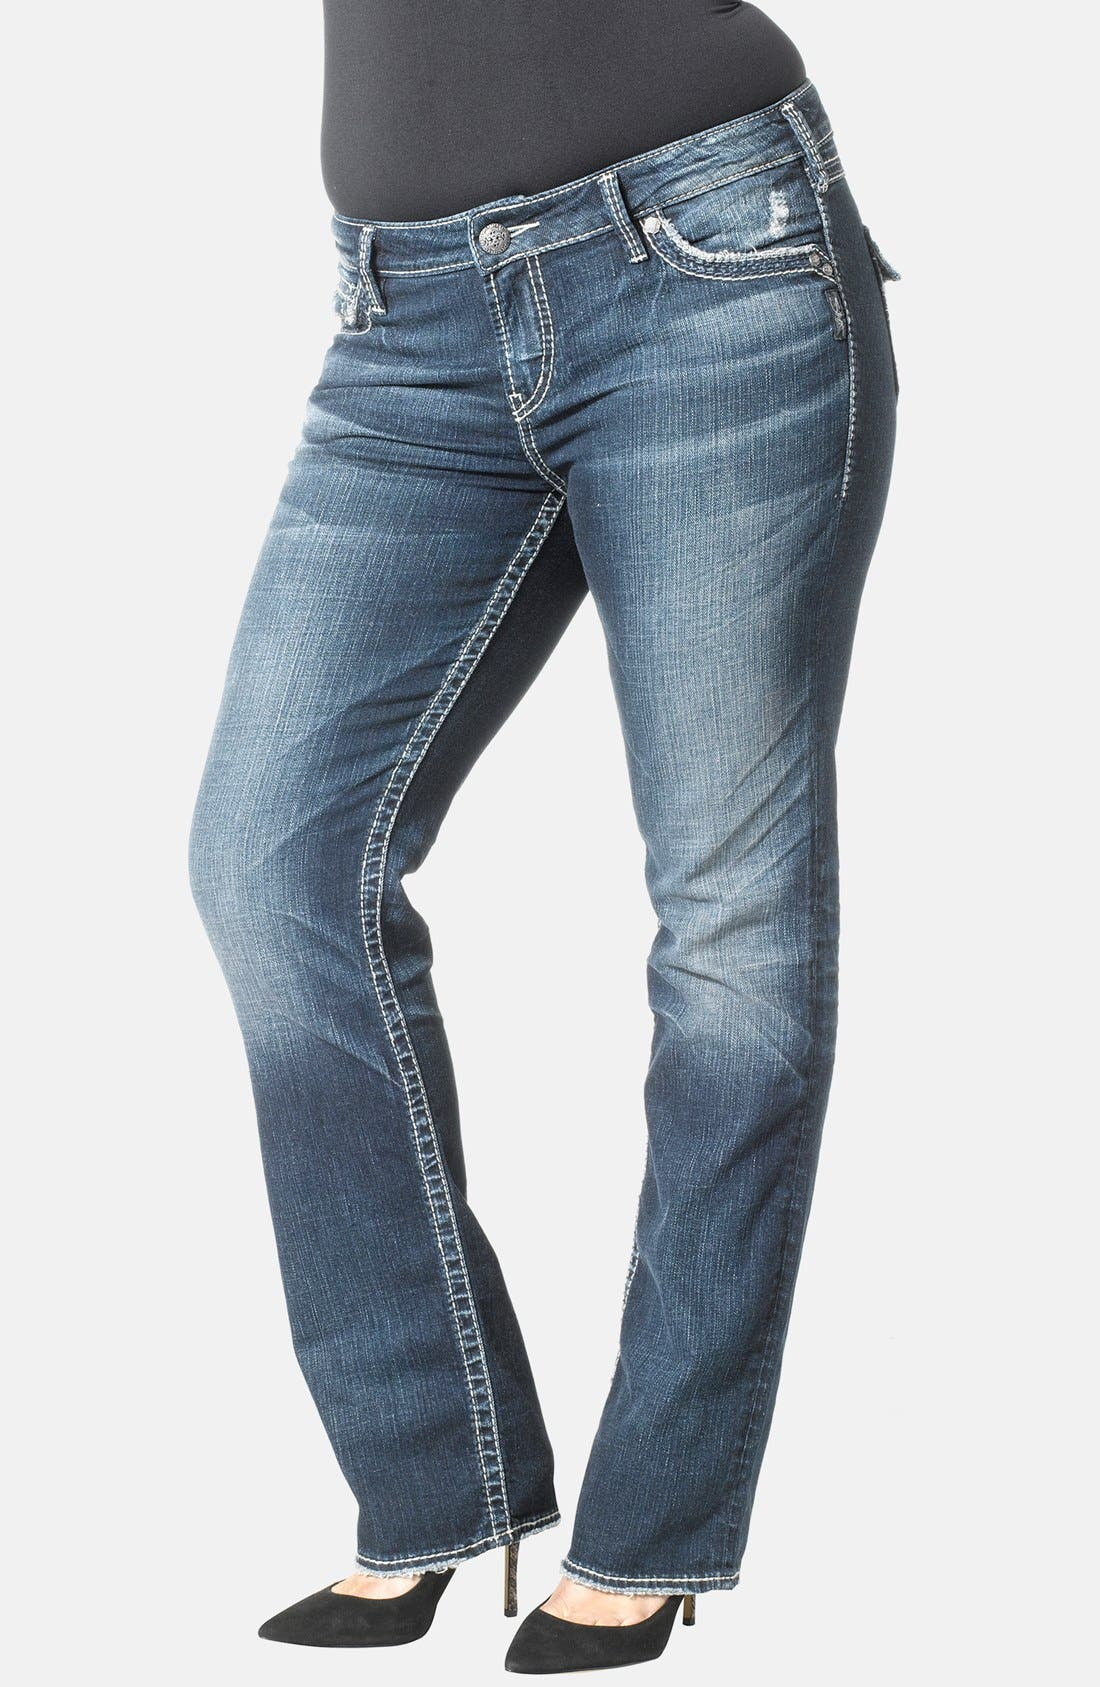 Main Image - Silver Jeans Co. 'Aiko' Distressed Flap Pocket Straight Leg Jeans (Plus Size)